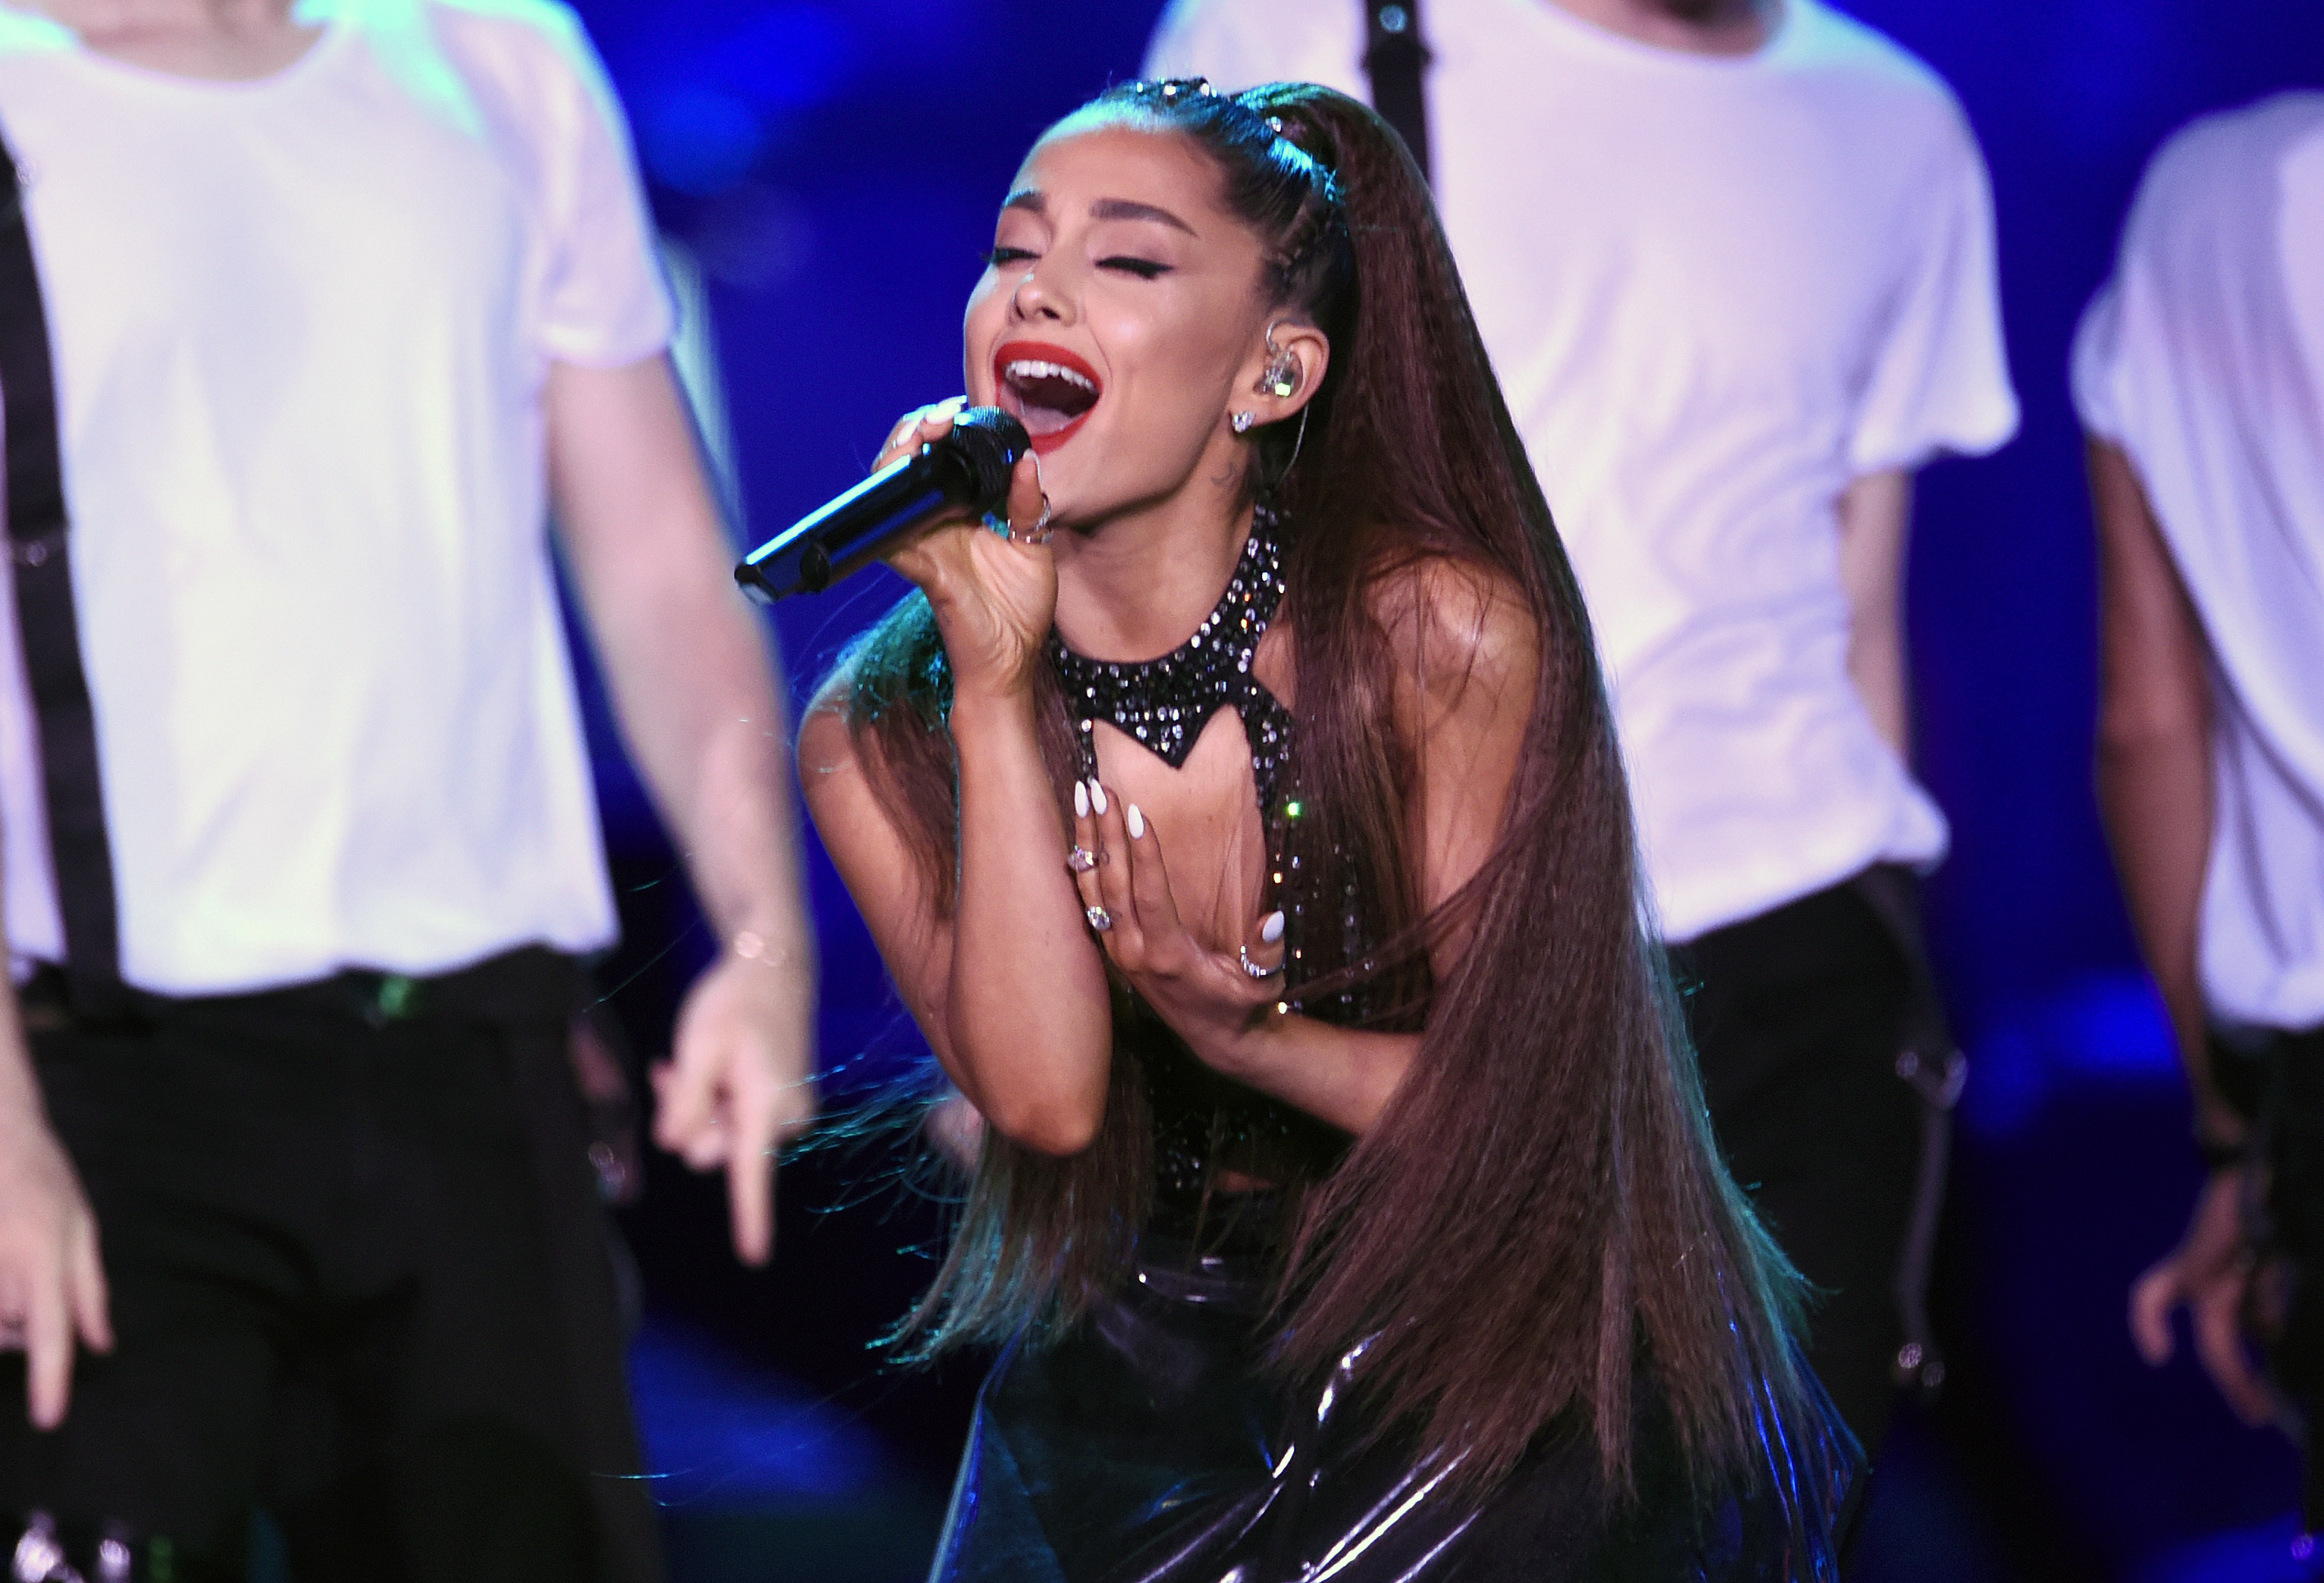 In this June 2, 2018 file photo, Ariana Grande performs at Wango Tango in Los Angeles.